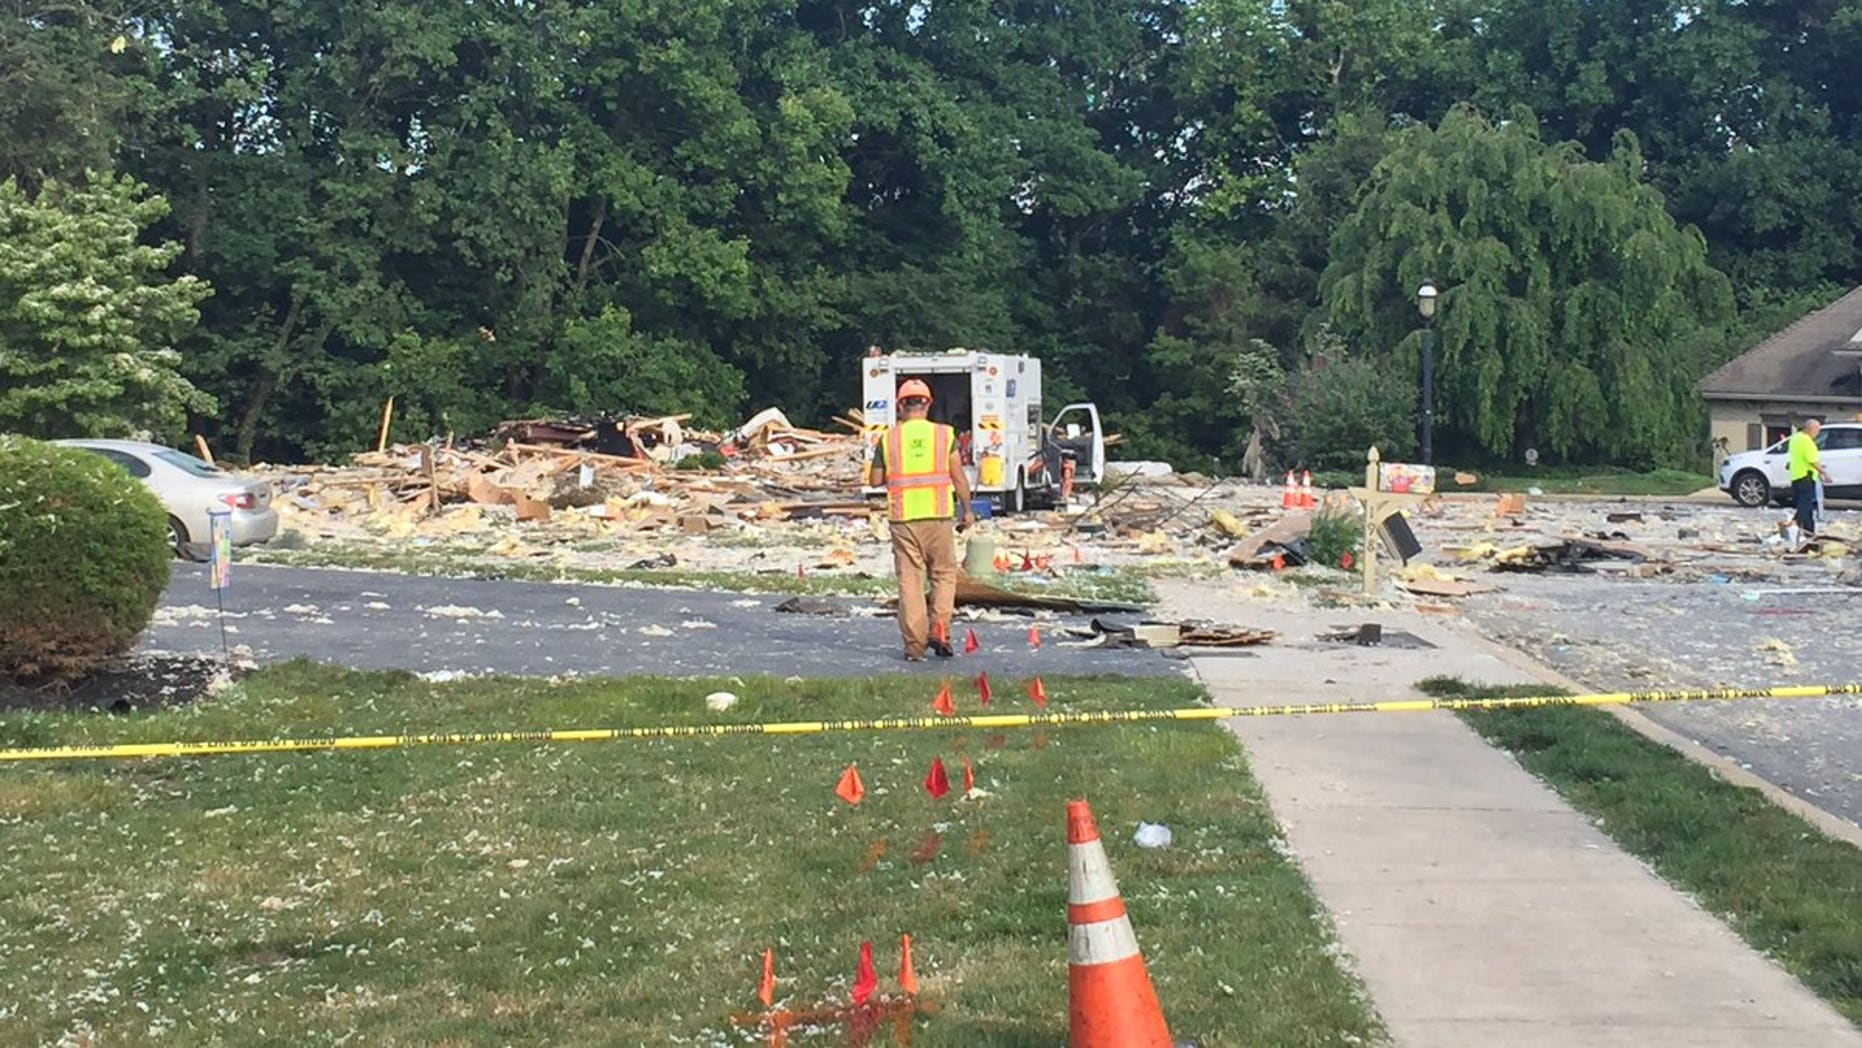 The aftermath of the house explosion in Manor Township, Lancaster County, Pennsylvania.